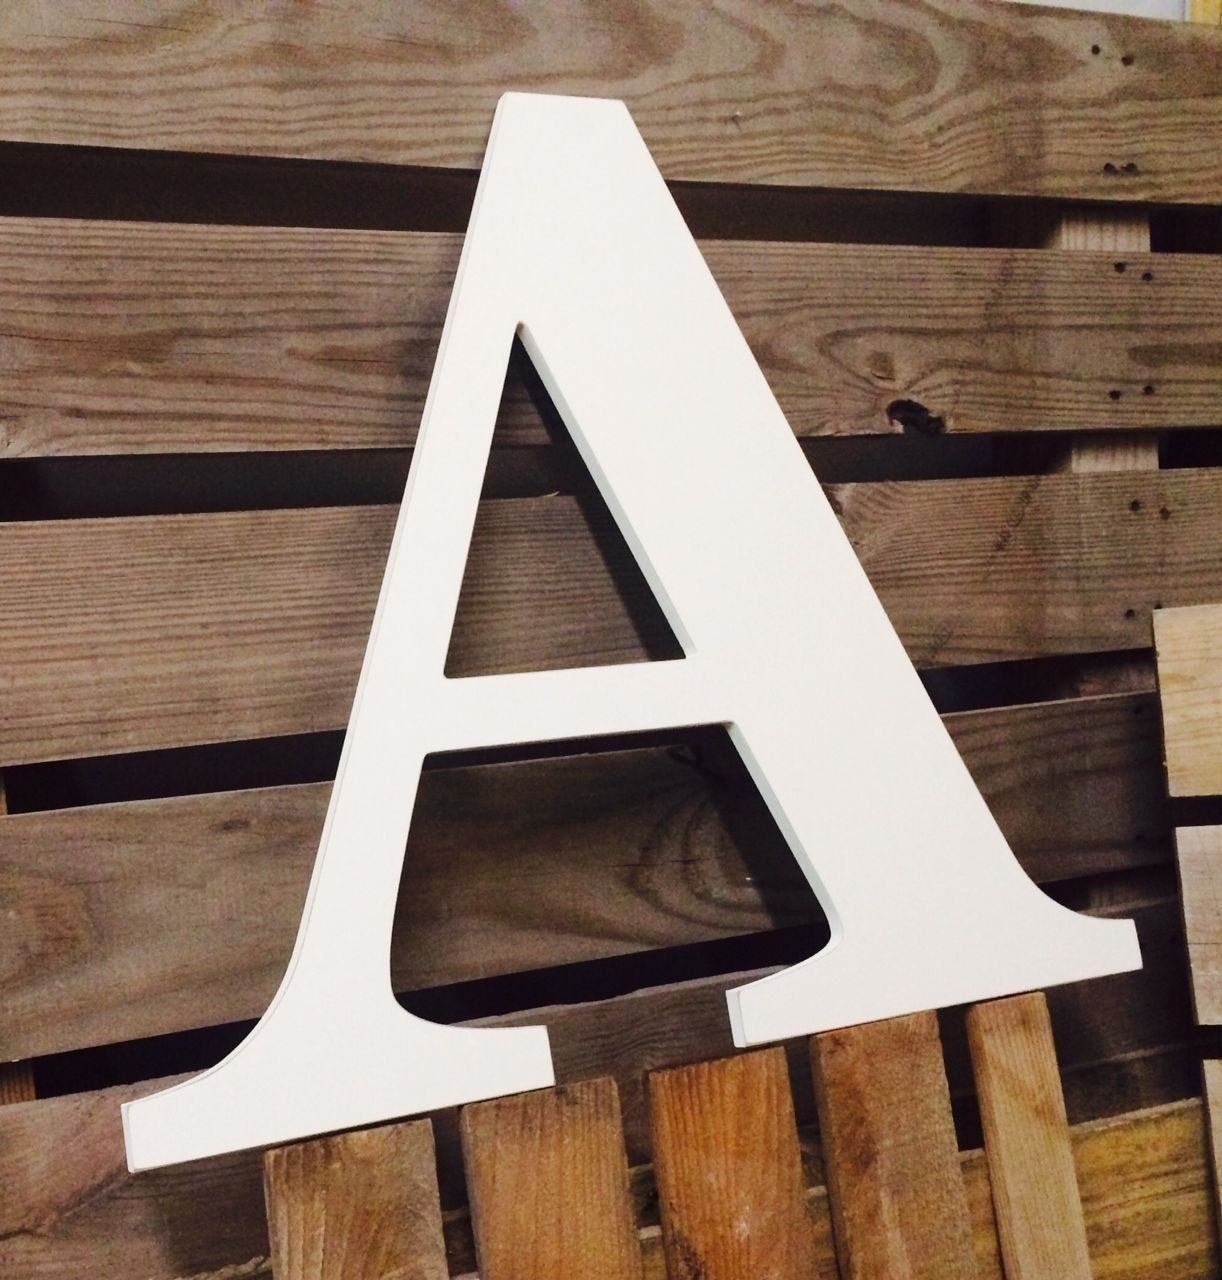 Wedding Guest Book Etsy Wooden Guest Book Letter A Rustic Etsy Wooden Guest Book Wedding Guest Book Etsy Big Wooden Letters